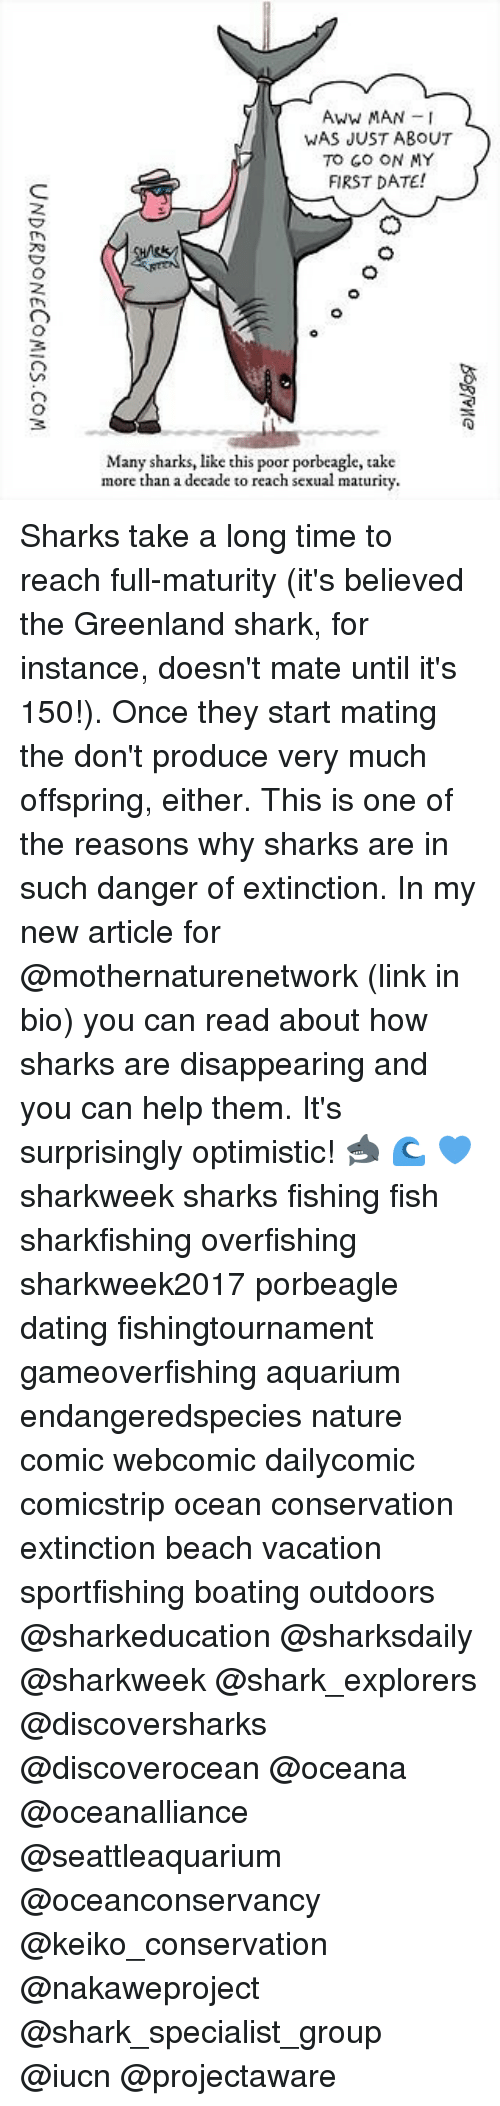 Aww, Dating, and Memes: Aww MAN I  WAS JUST ABOUT  TO GO ON MY  FIRST DATE!  3  Many sharks, like this poor porbeagle, take  more than a decade to reach sexual maturity. Sharks take a long time to reach full-maturity (it's believed the Greenland shark, for instance, doesn't mate until it's 150!). Once they start mating the don't produce very much offspring, either. This is one of the reasons why sharks are in such danger of extinction. In my new article for @mothernaturenetwork (link in bio) you can read about how sharks are disappearing and you can help them. It's surprisingly optimistic! 🦈 🌊 💙 sharkweek sharks fishing fish sharkfishing overfishing sharkweek2017 porbeagle dating fishingtournament gameoverfishing aquarium endangeredspecies nature comic webcomic dailycomic comicstrip ocean conservation extinction beach vacation sportfishing boating outdoors @sharkeducation @sharksdaily @sharkweek @shark_explorers @discoversharks @discoverocean @oceana @oceanalliance @seattleaquarium @oceanconservancy @keiko_conservation @nakaweproject @shark_specialist_group @iucn @projectaware